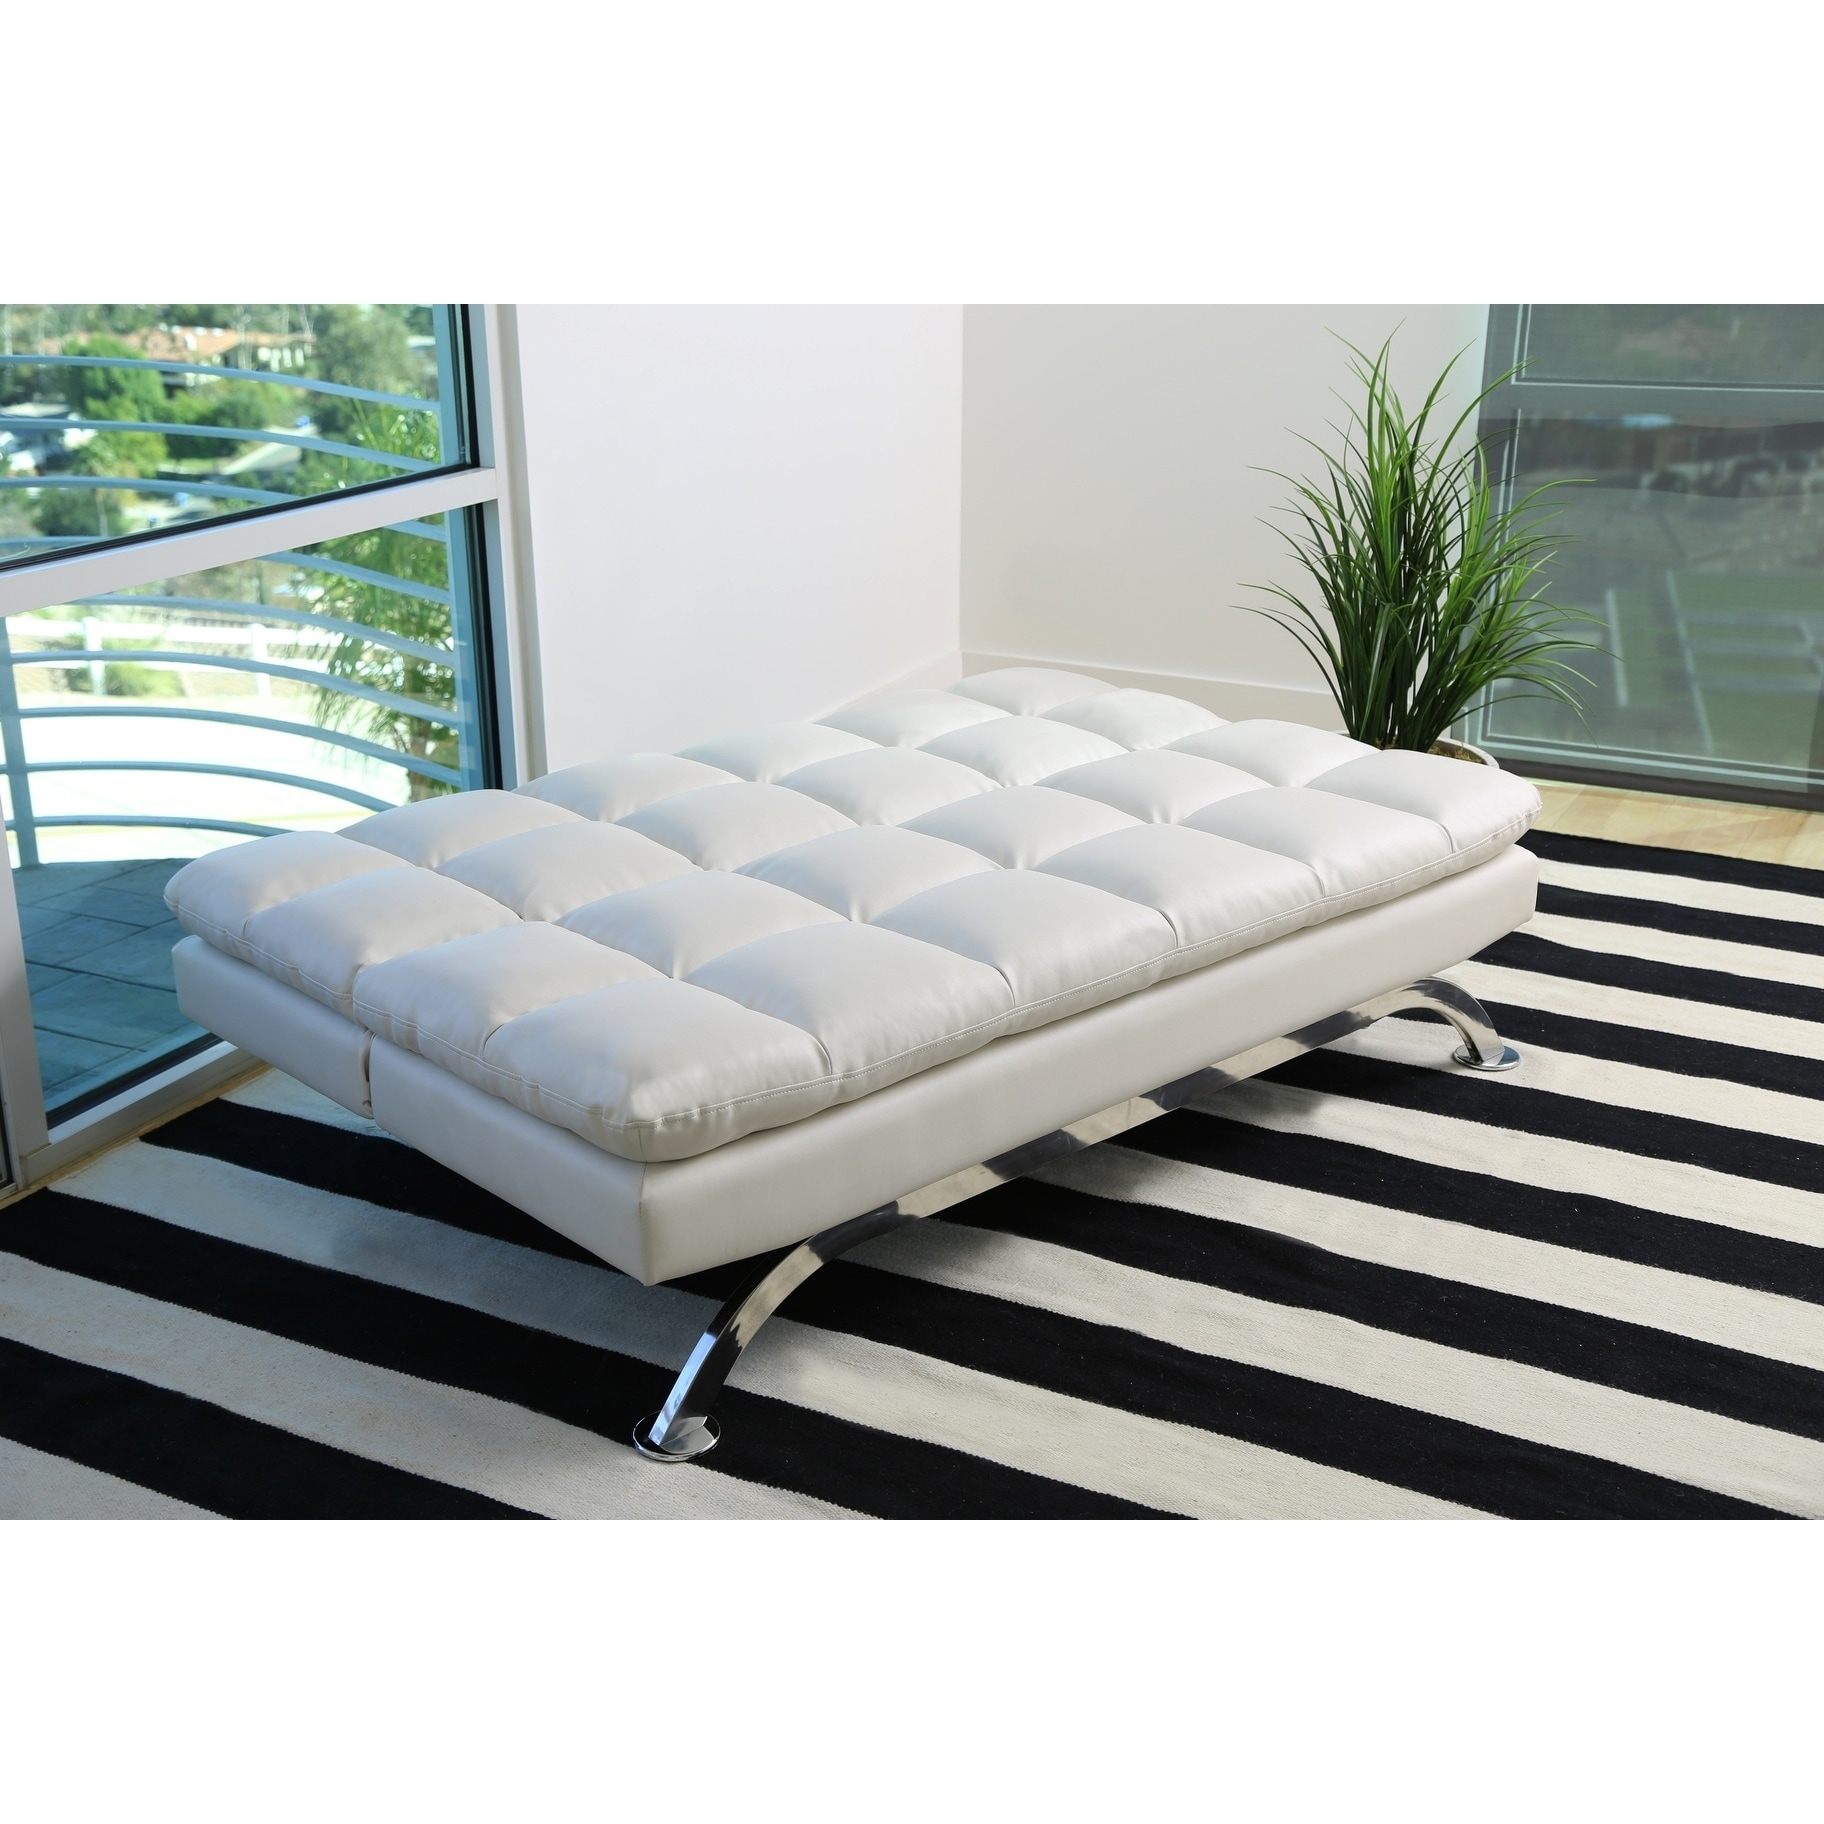 Vienna Bonded Leather Chaise Lounger Vienna Sofa Bed